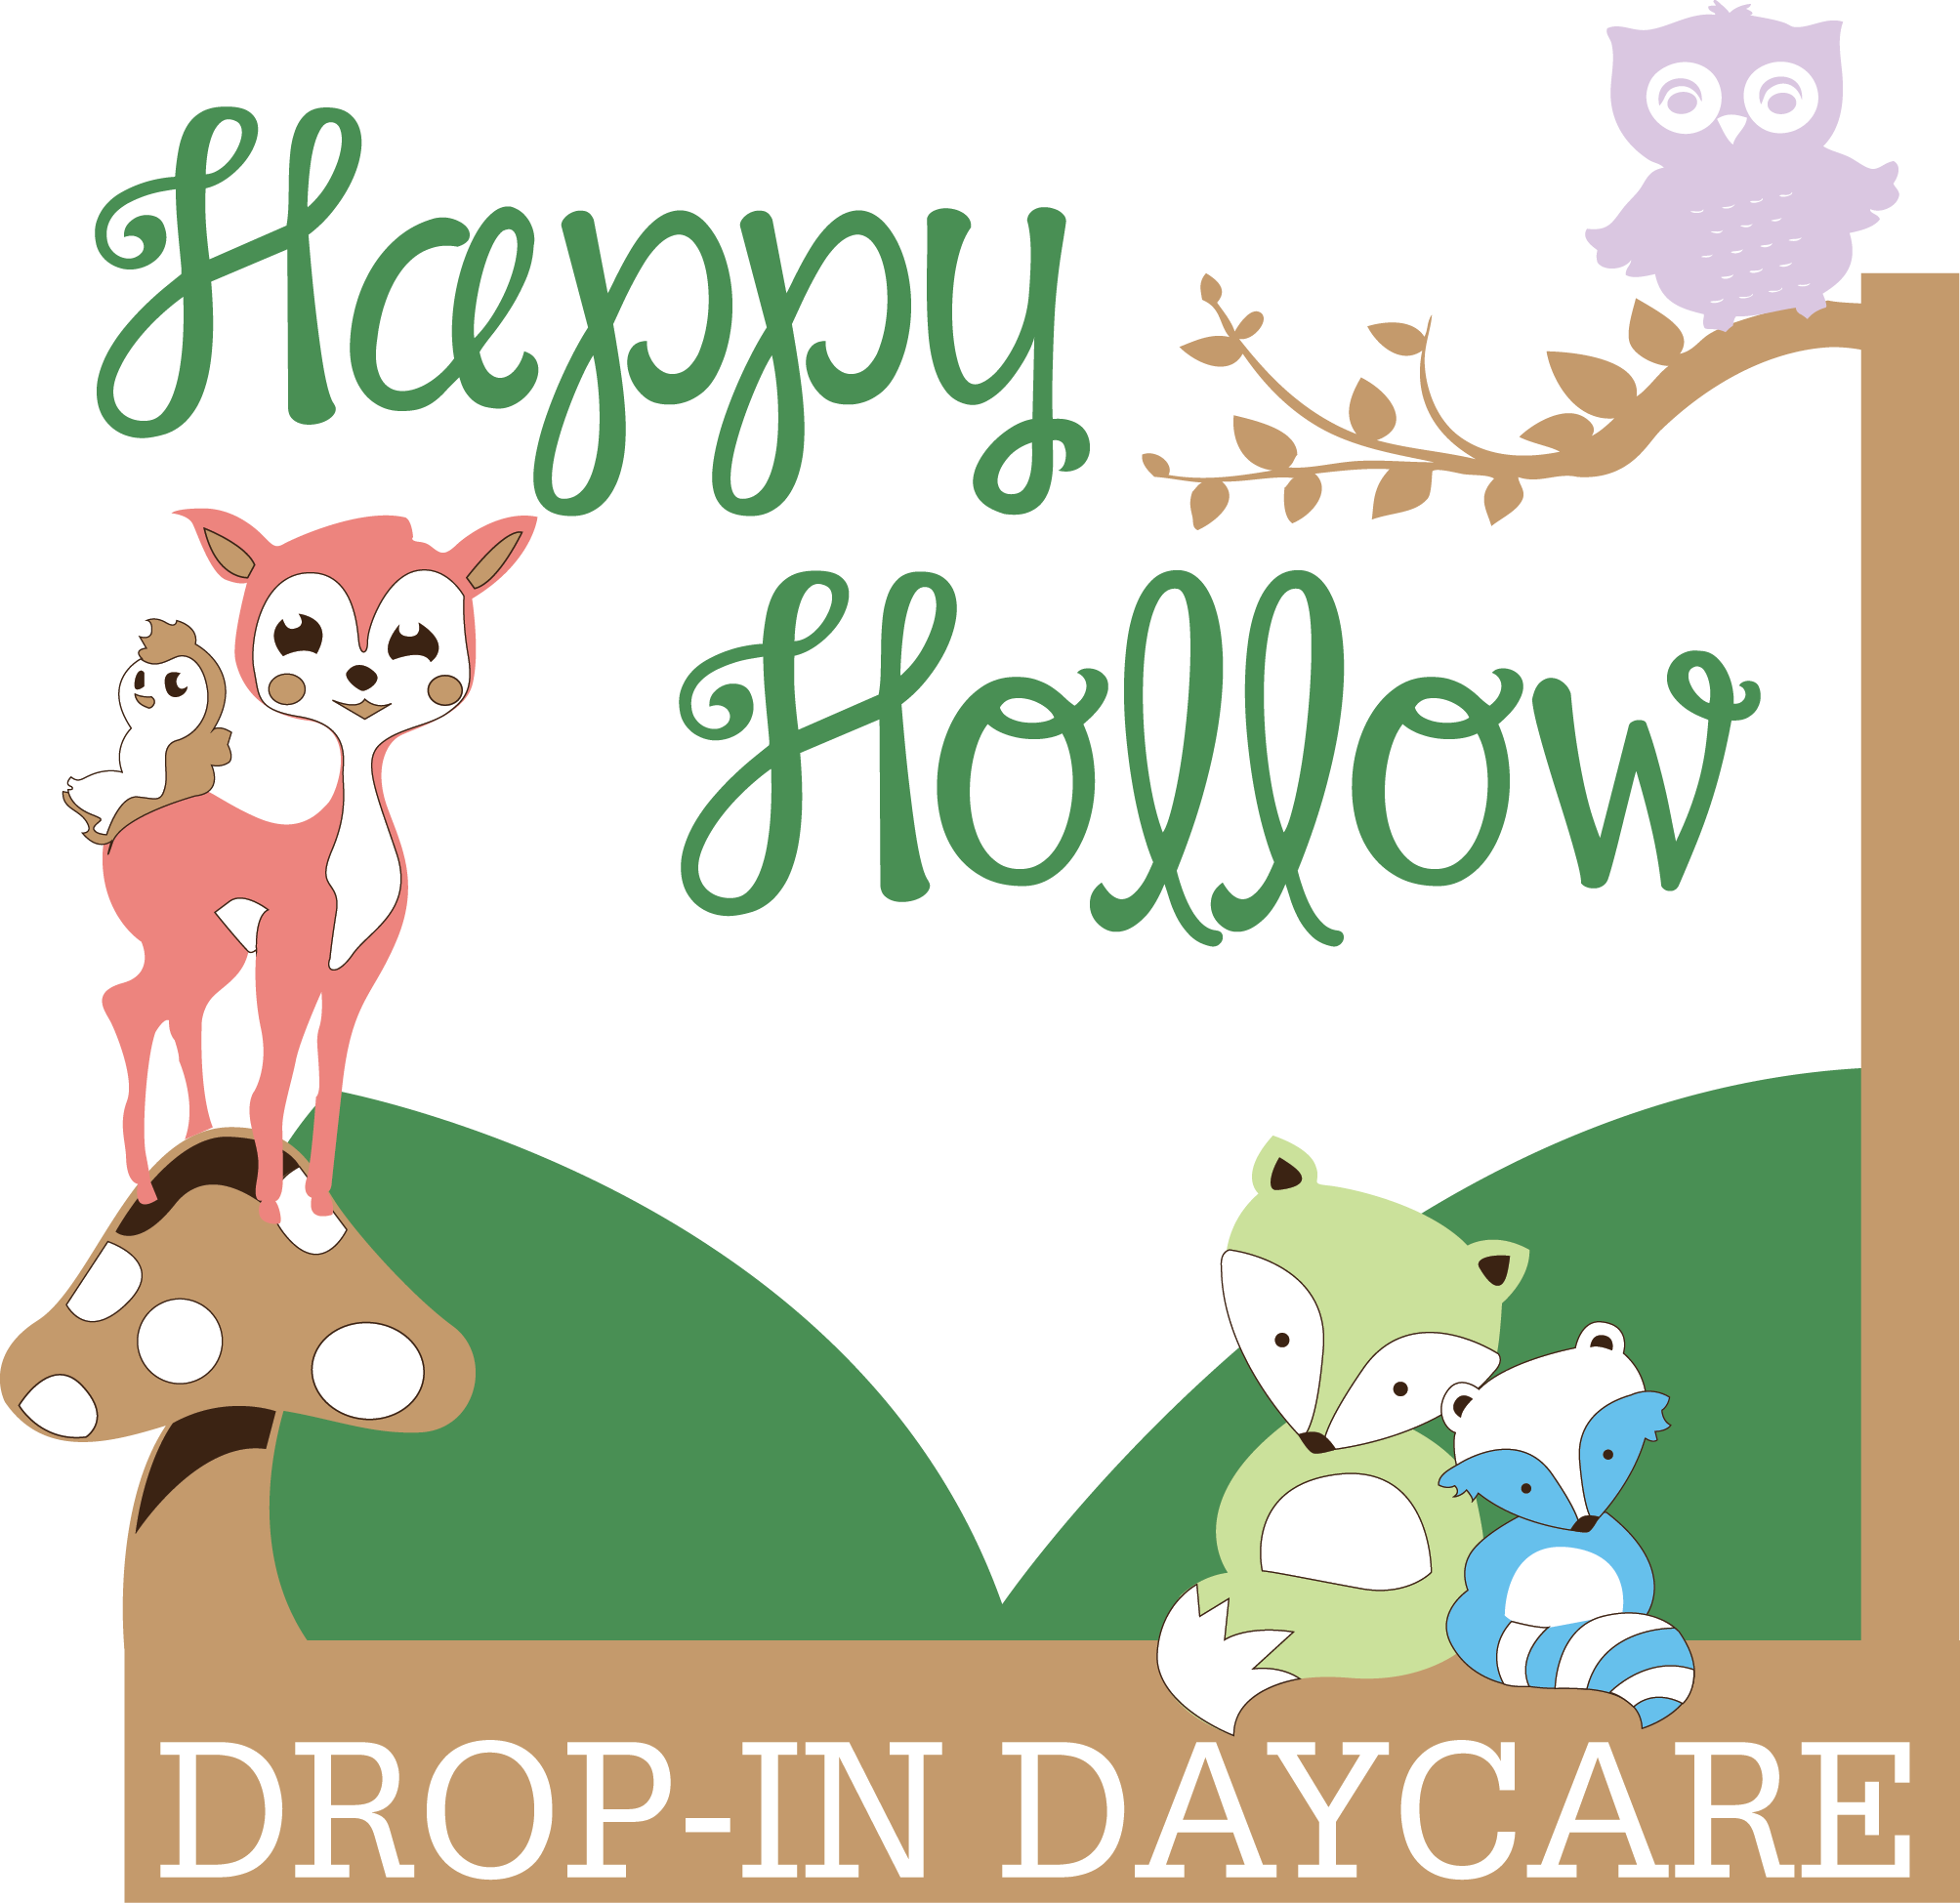 HAPPY HOLLOW DROP-IN DAYCARE